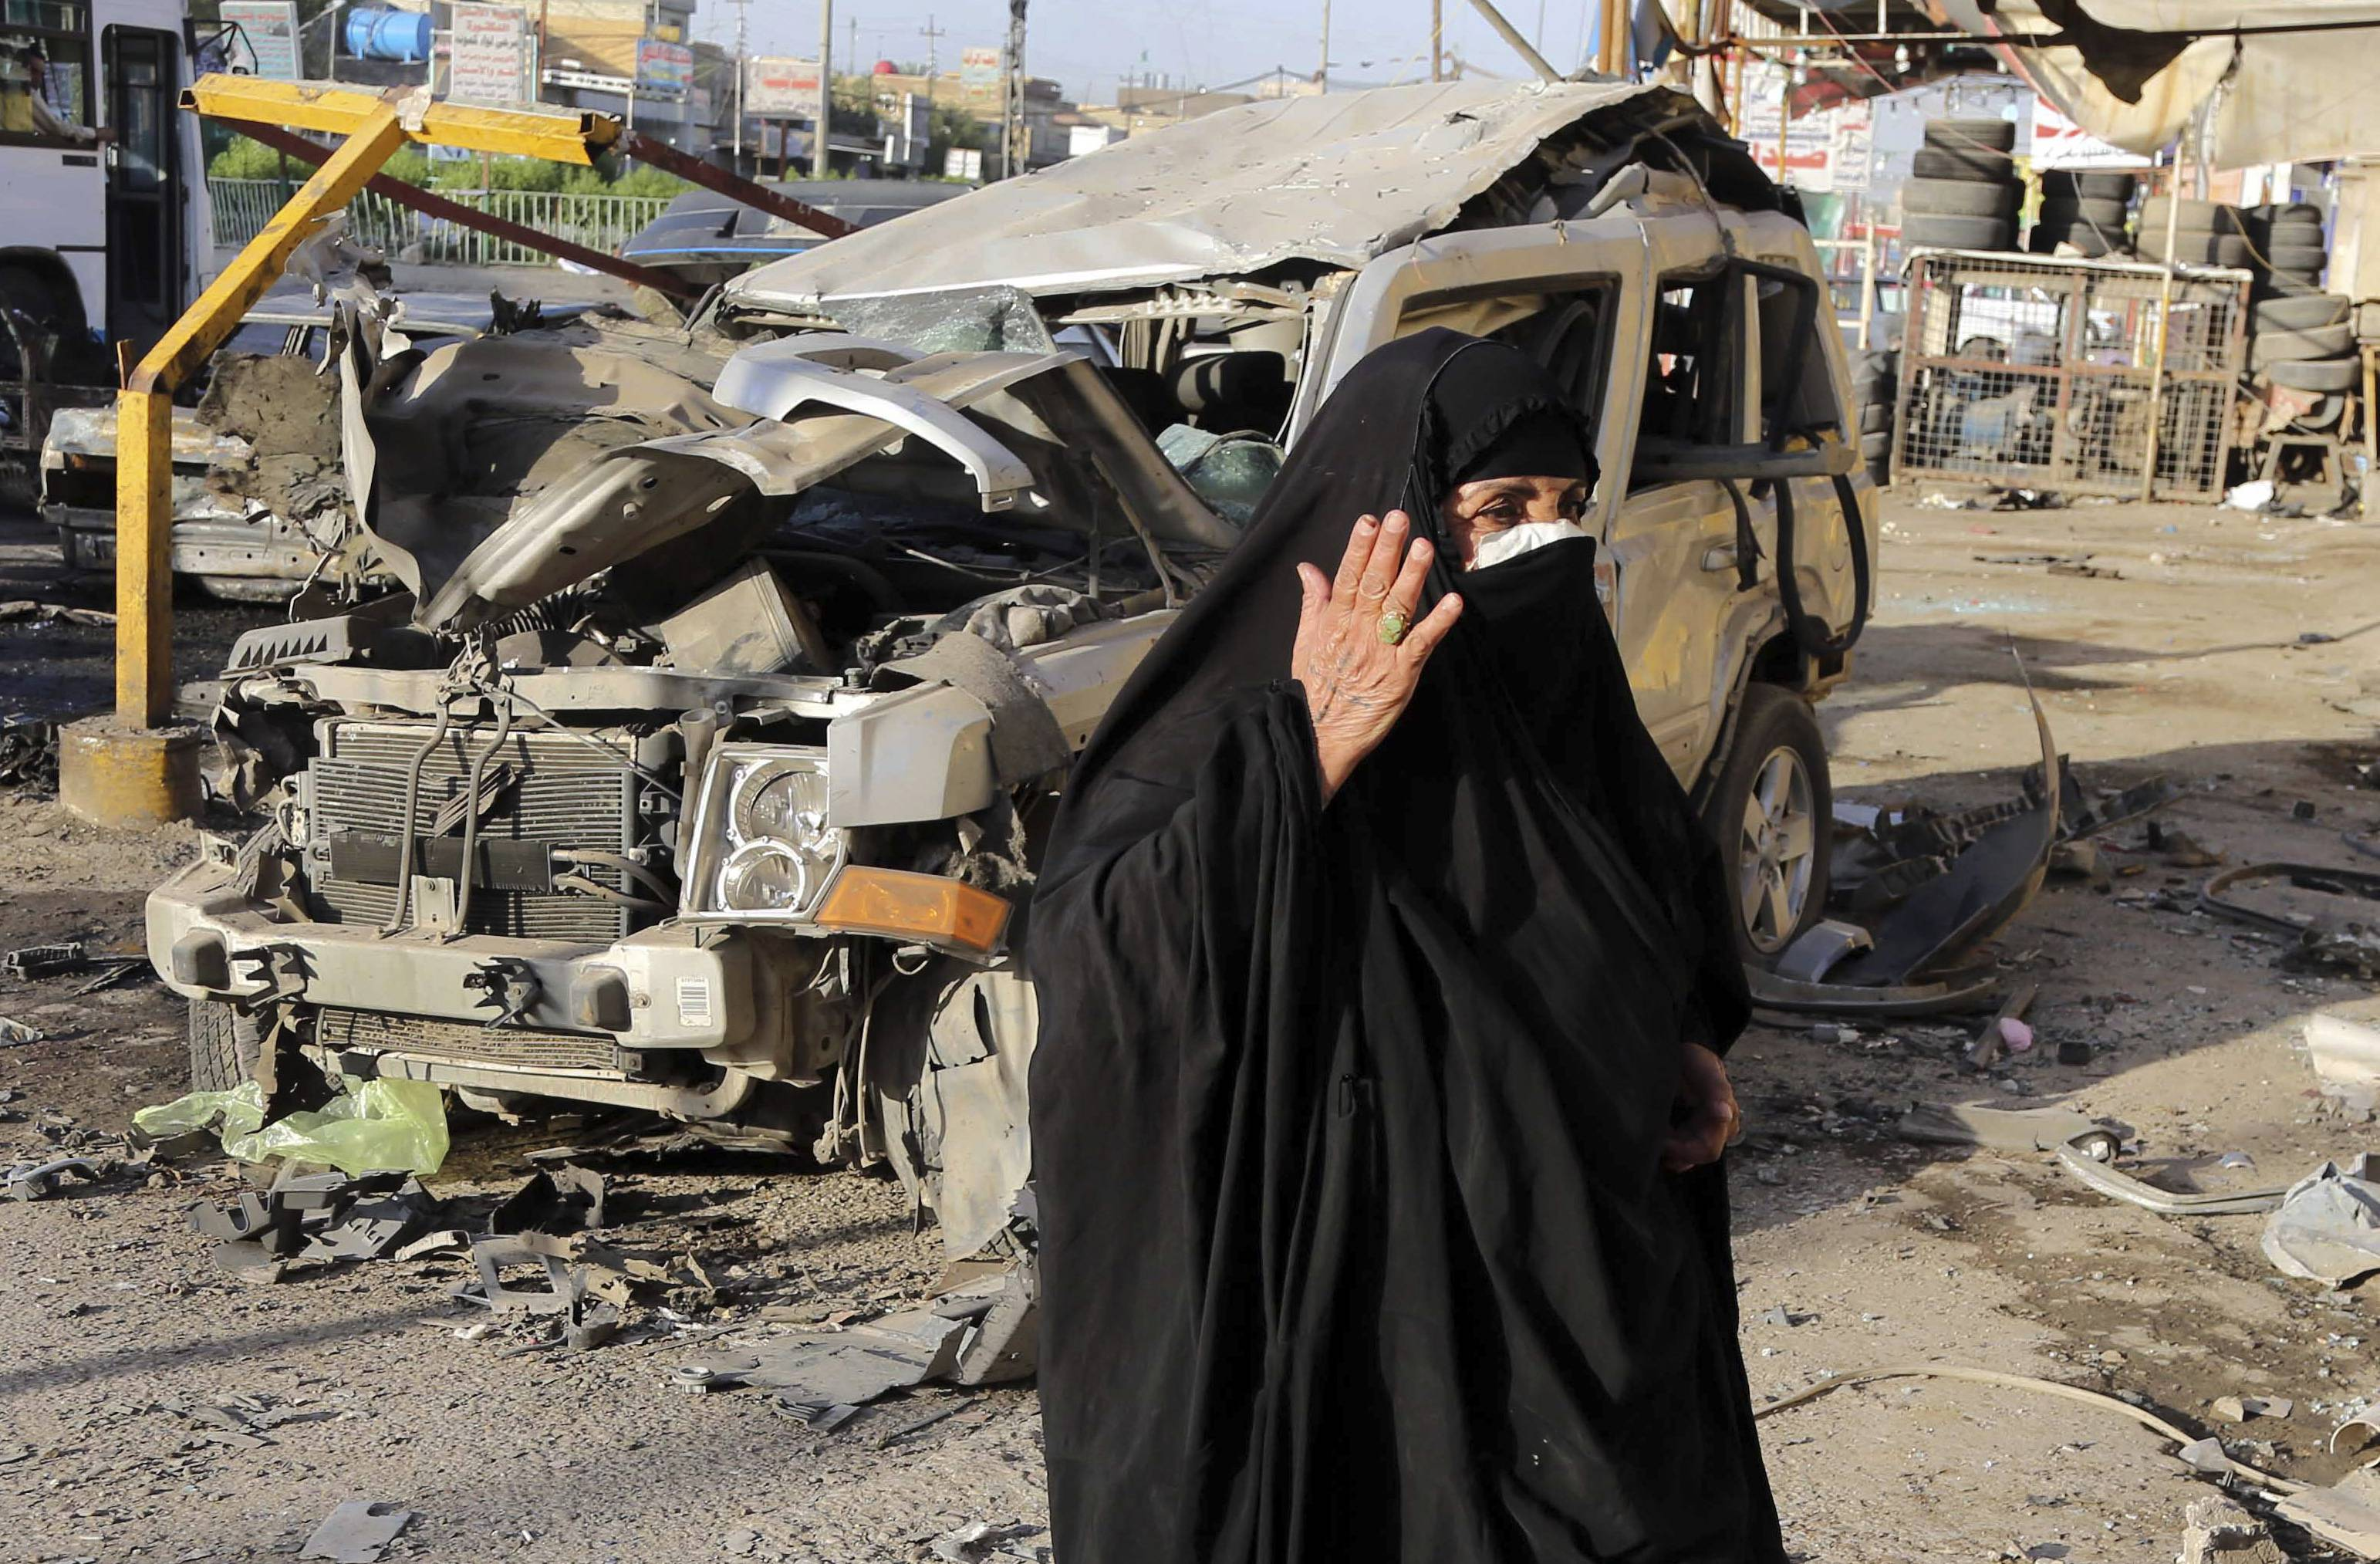 A woman looks at damage from a Saturday car bomb attack in the mainly Shiite Habibiya neighborhood of Baghdad, Iraq, Sunday. A series of bombings on Saturday in Iraq killed and wounded scores of people, a day after army shelling killed many civilians and gunmen in the militant-held city of Fallujah, authorities said.